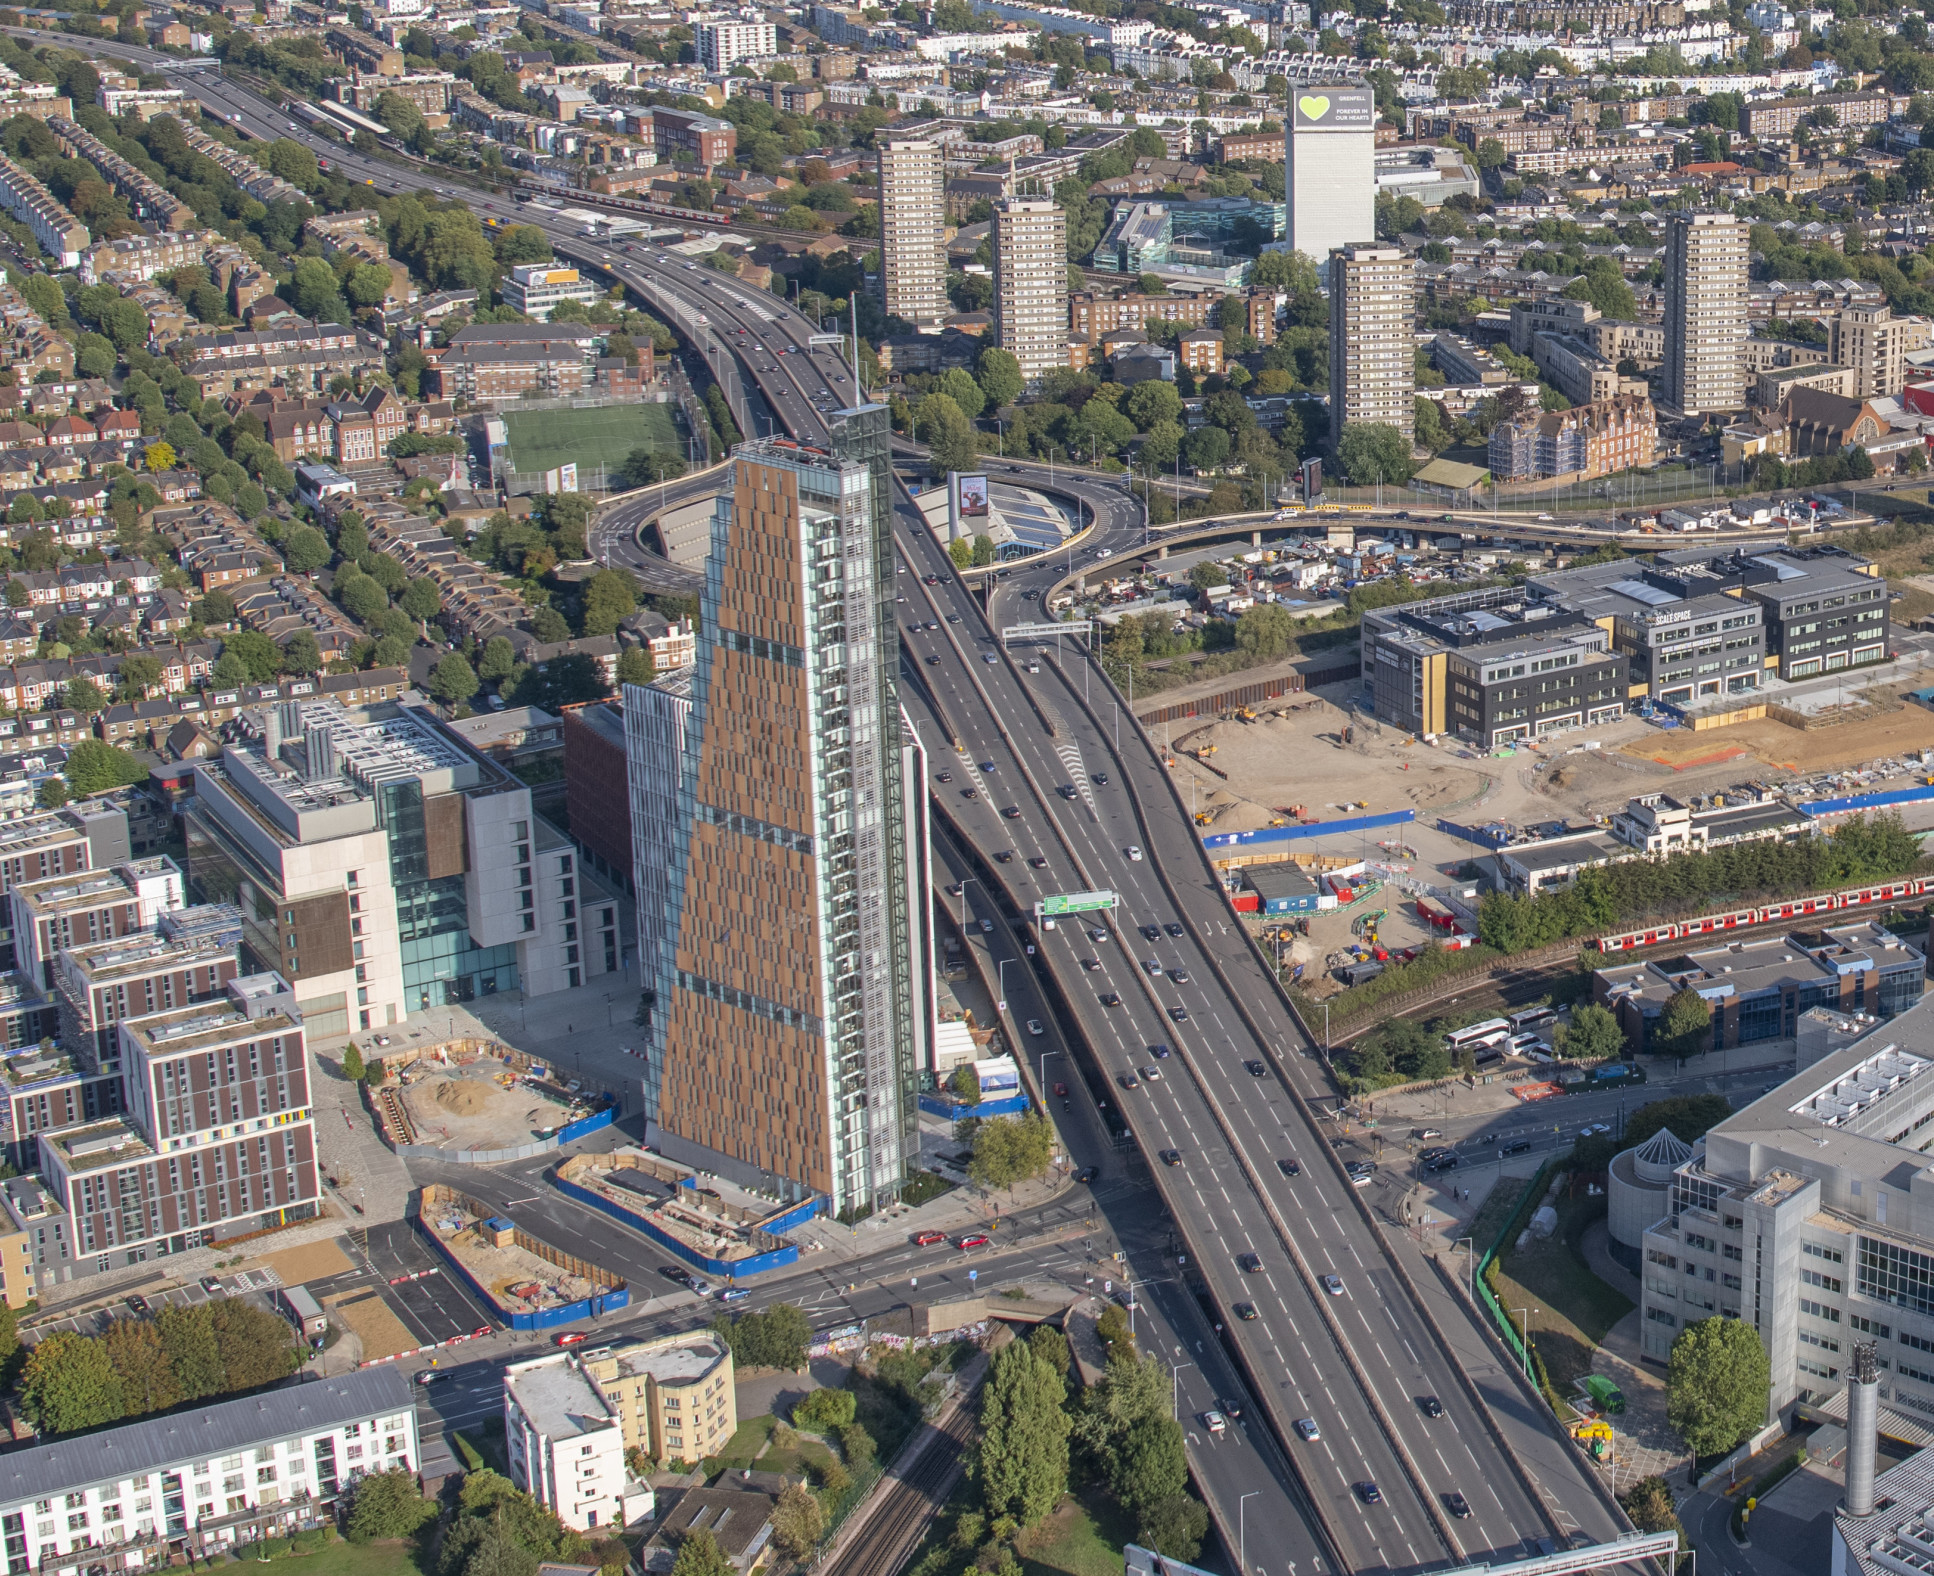 A birds eye view of the White City Campus  - jasonhawkes 524065 v3 1623399399683 x2 - Minister for London visits Scale Space White City | Imperial News